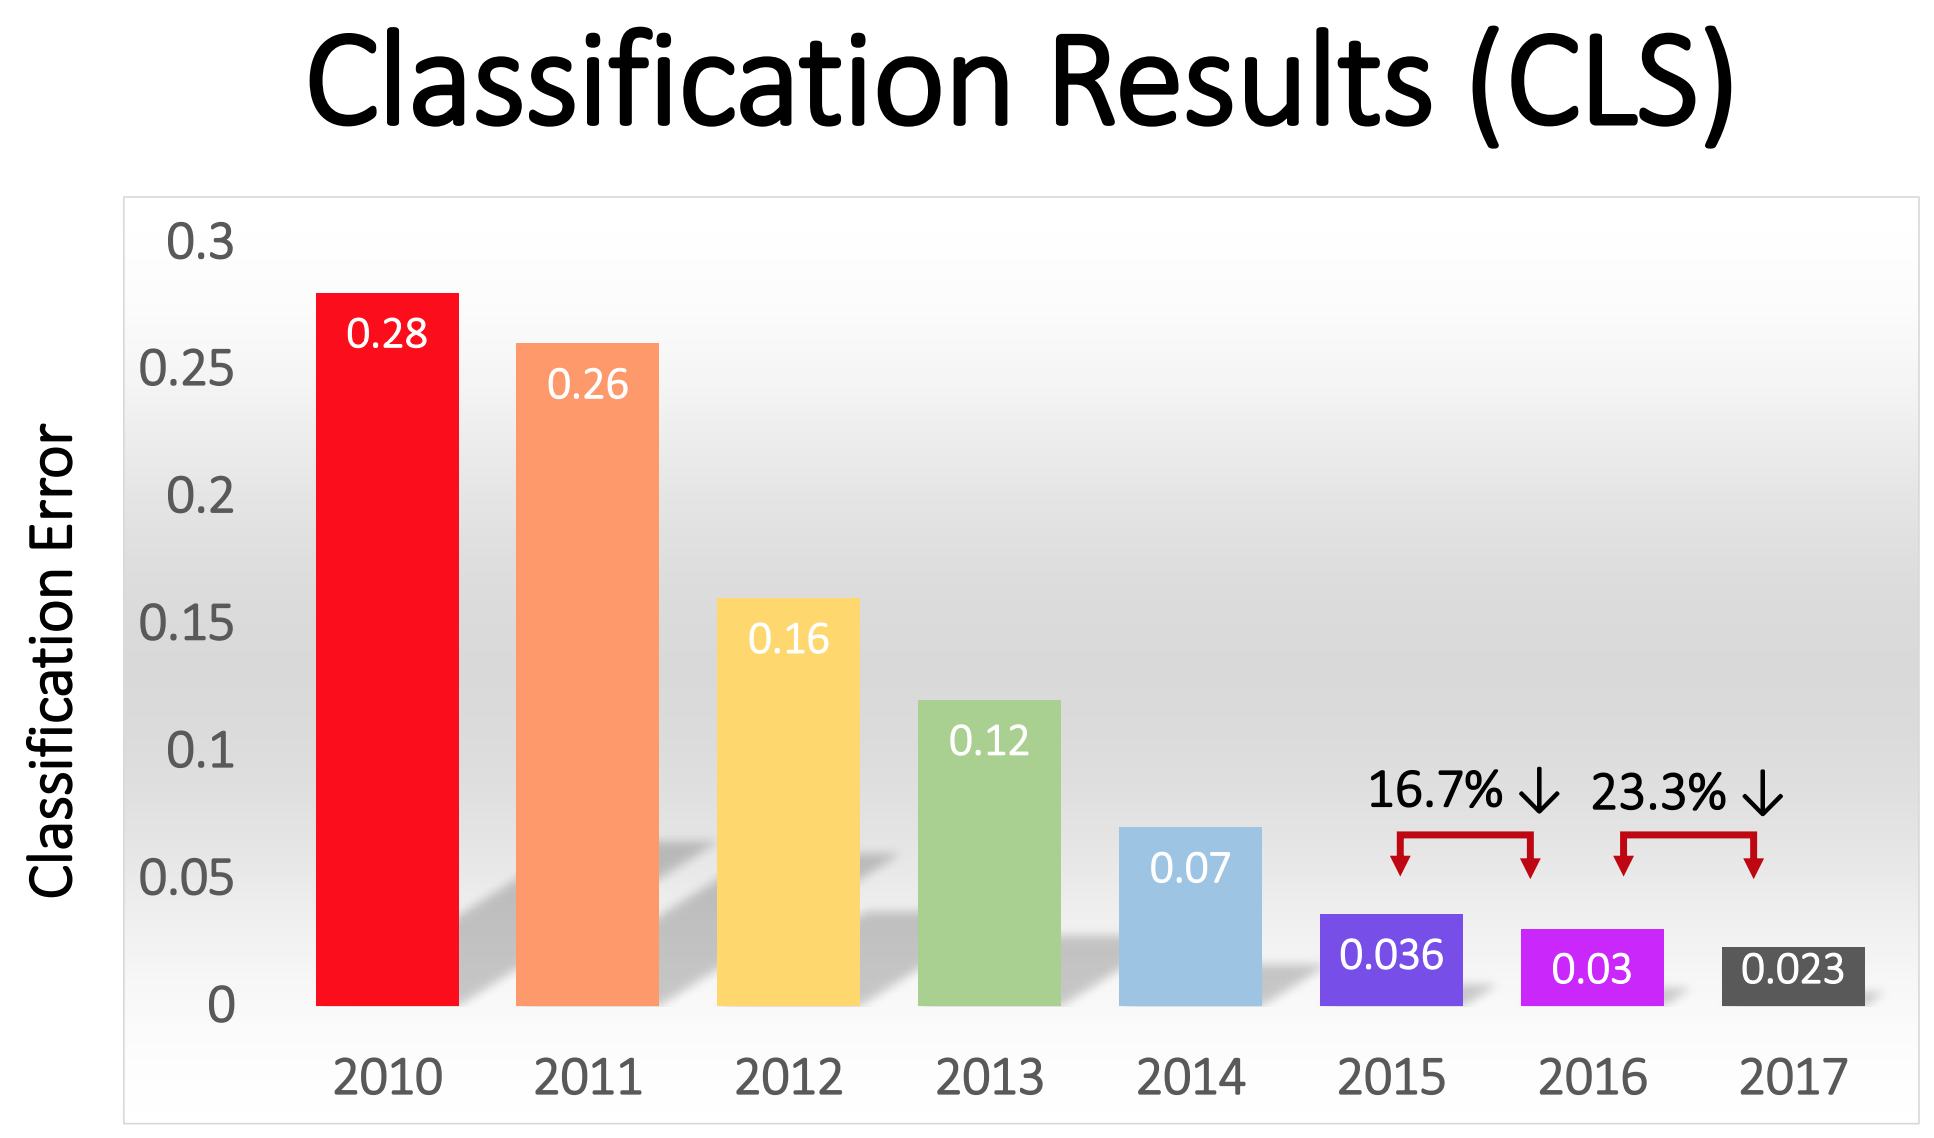 This slide from the ImageNet team shows the winning team's error rate each year in the top-5 classification task. The error rate fell steadily from 2010 to 2017.